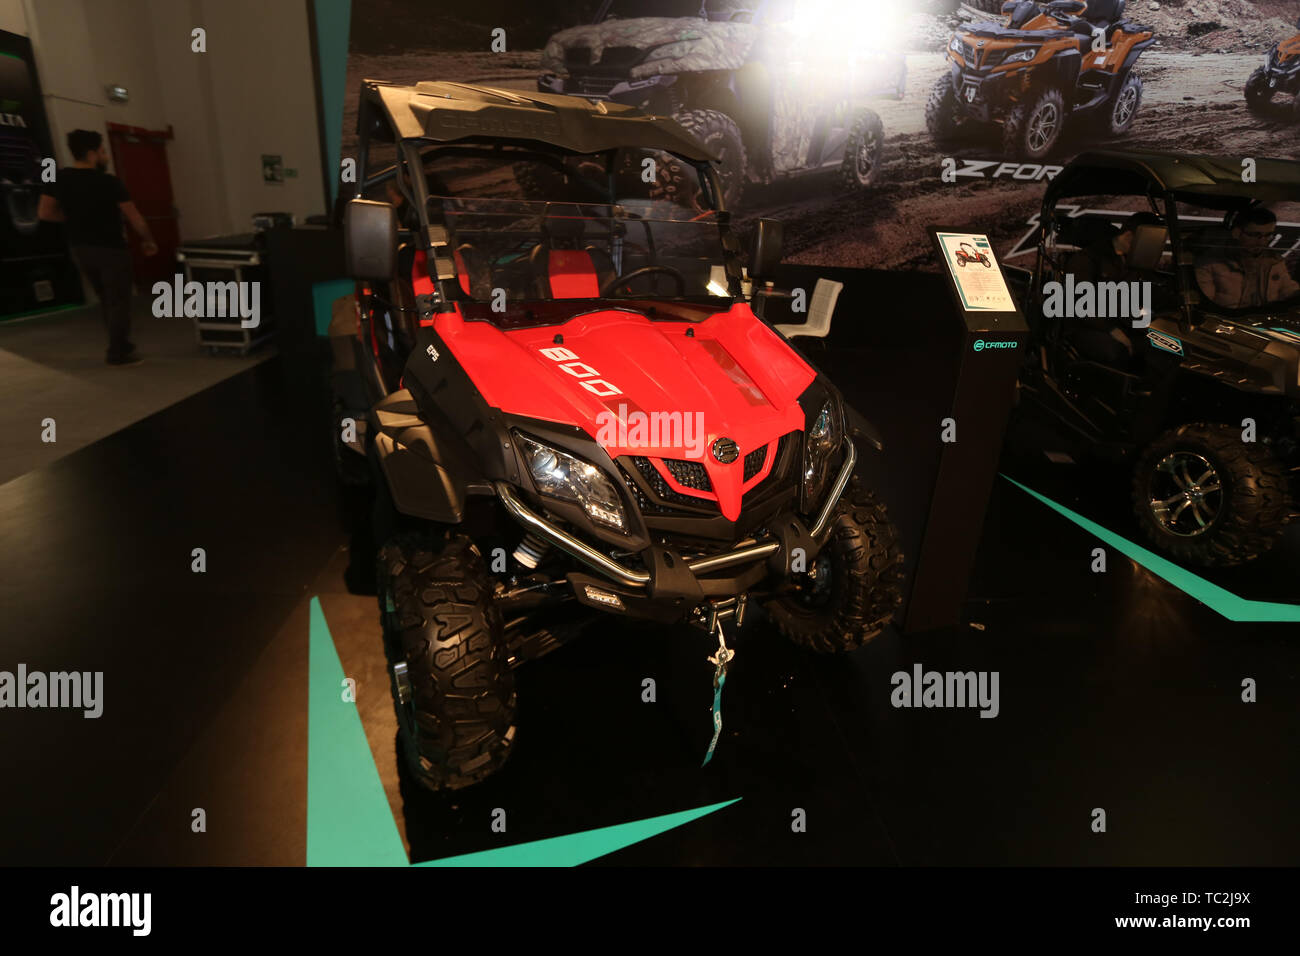 ISTANBUL, TURKEY - FEBRUARY 23, 2019: ZForce 800 EX ATV on display at Motobike Istanbul in Istanbul Exhibition Center - Stock Image